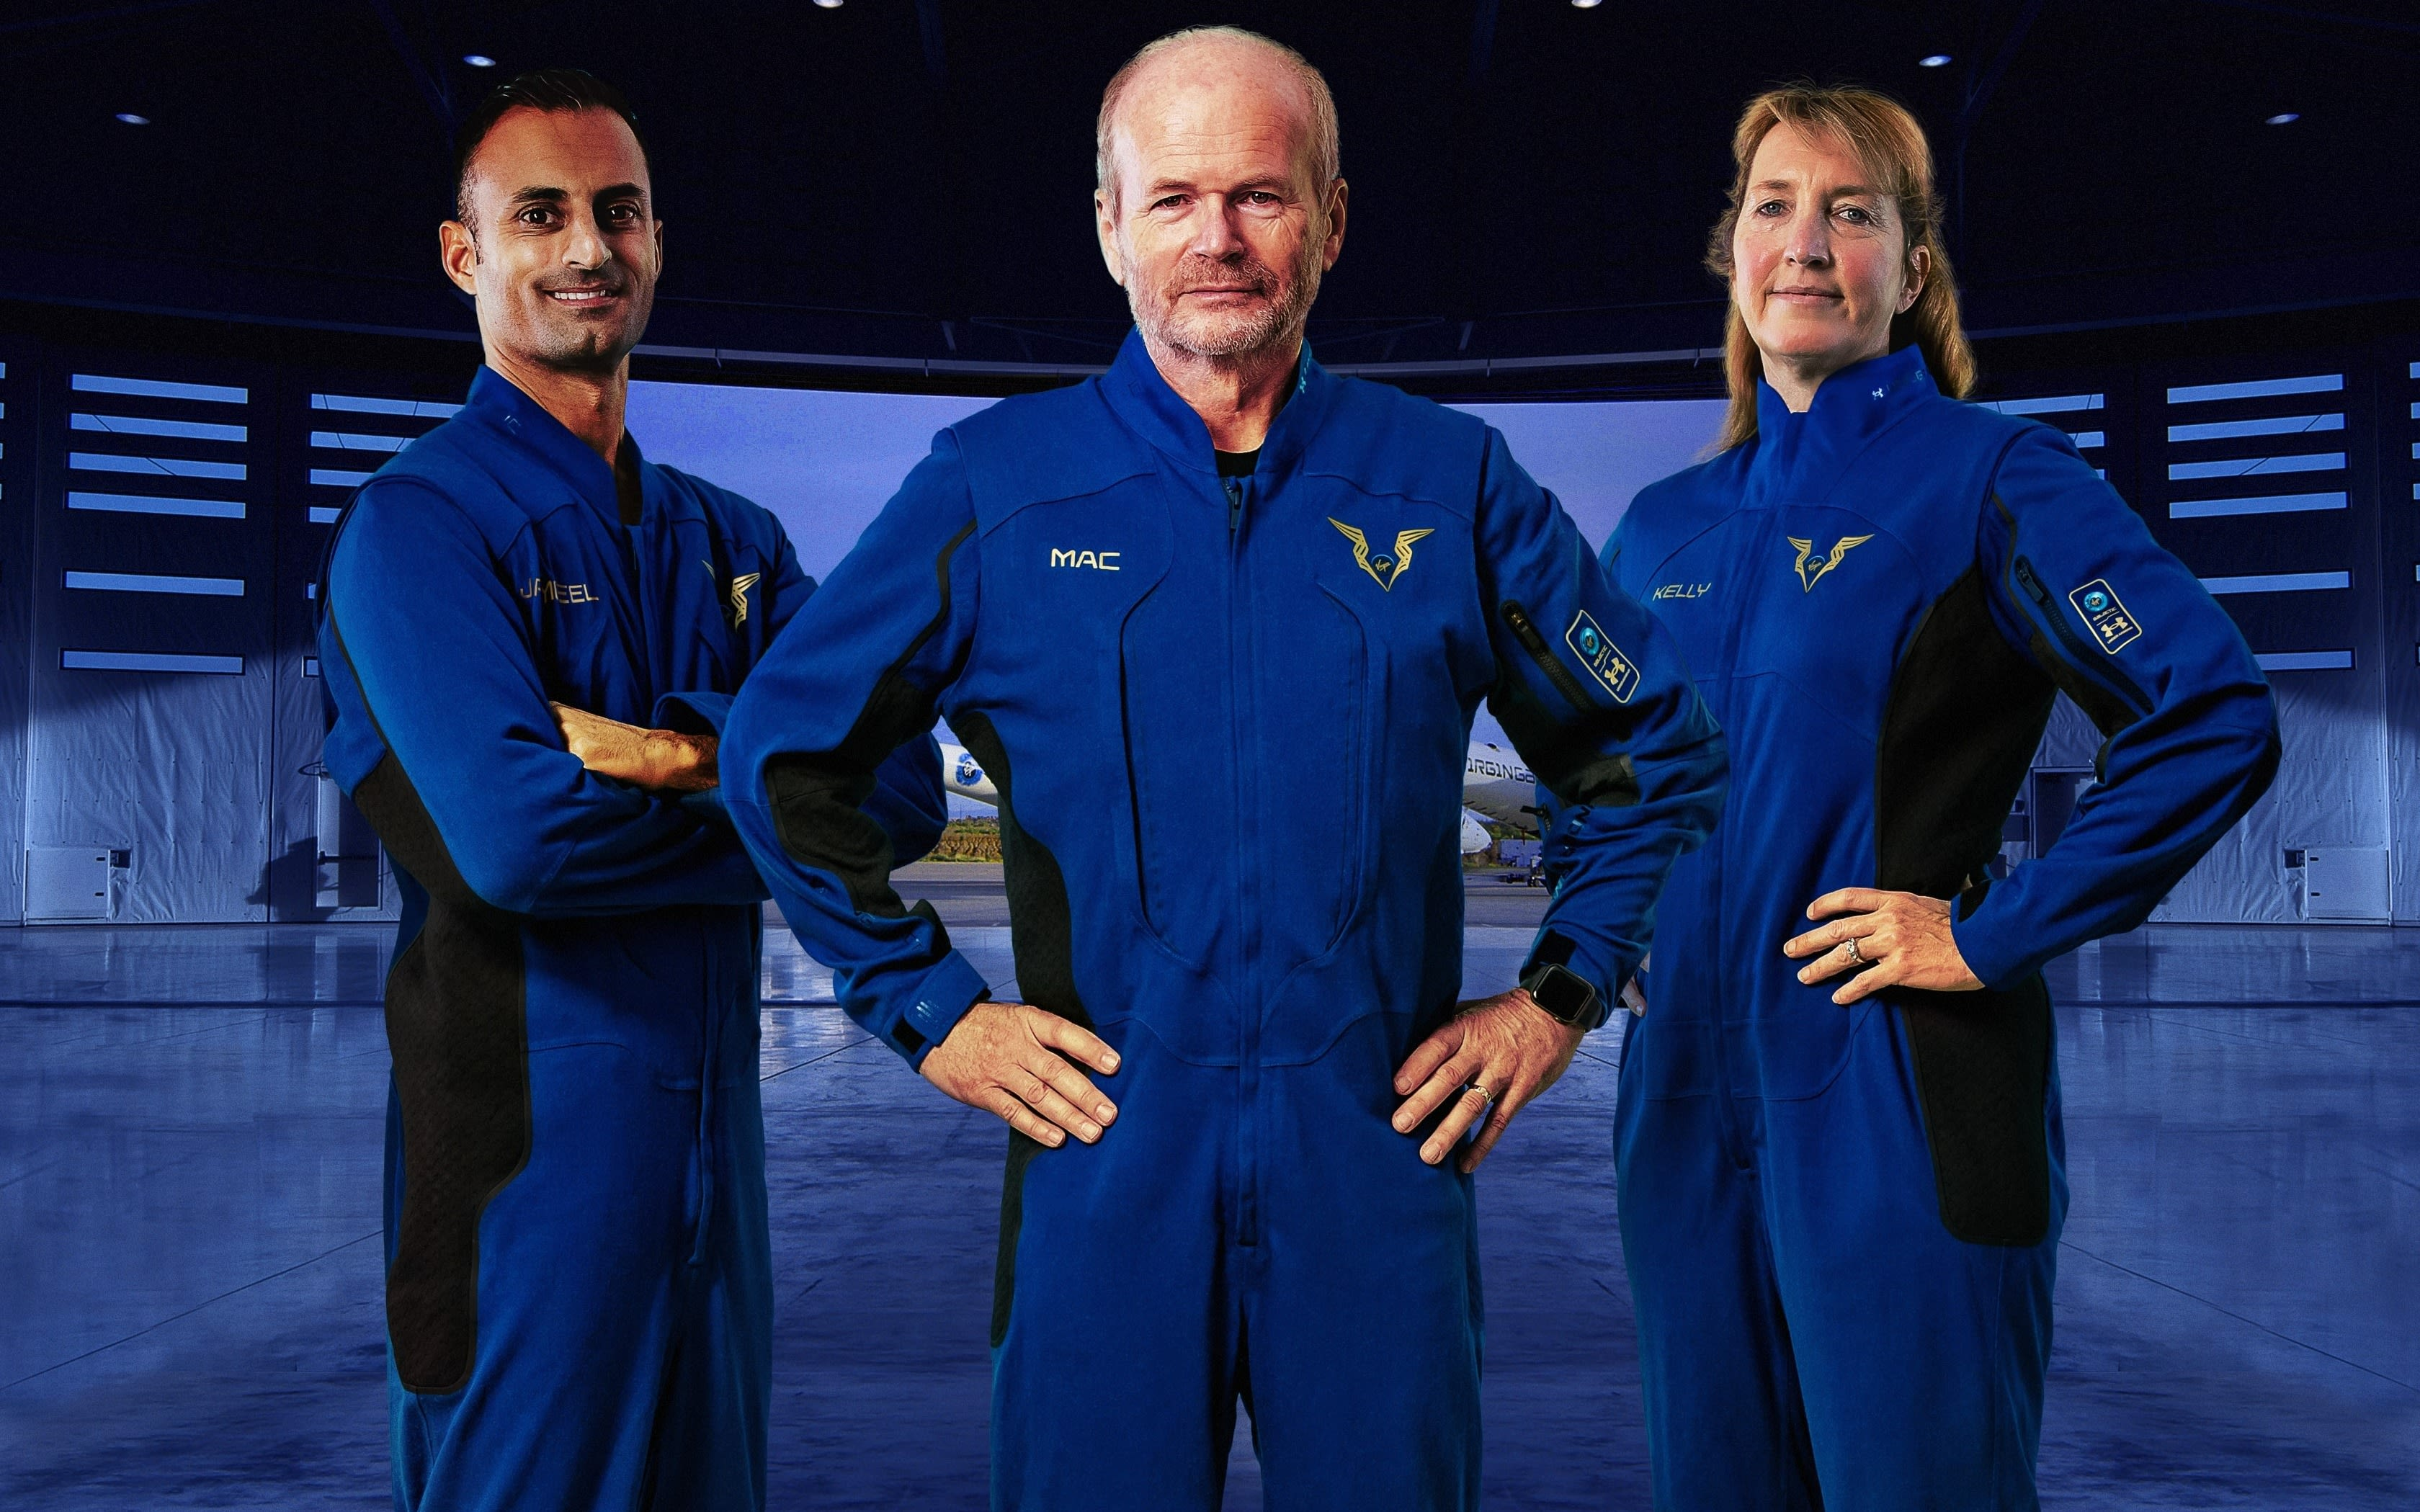 three Virgin Galactic pilots modelling their new spacesuits